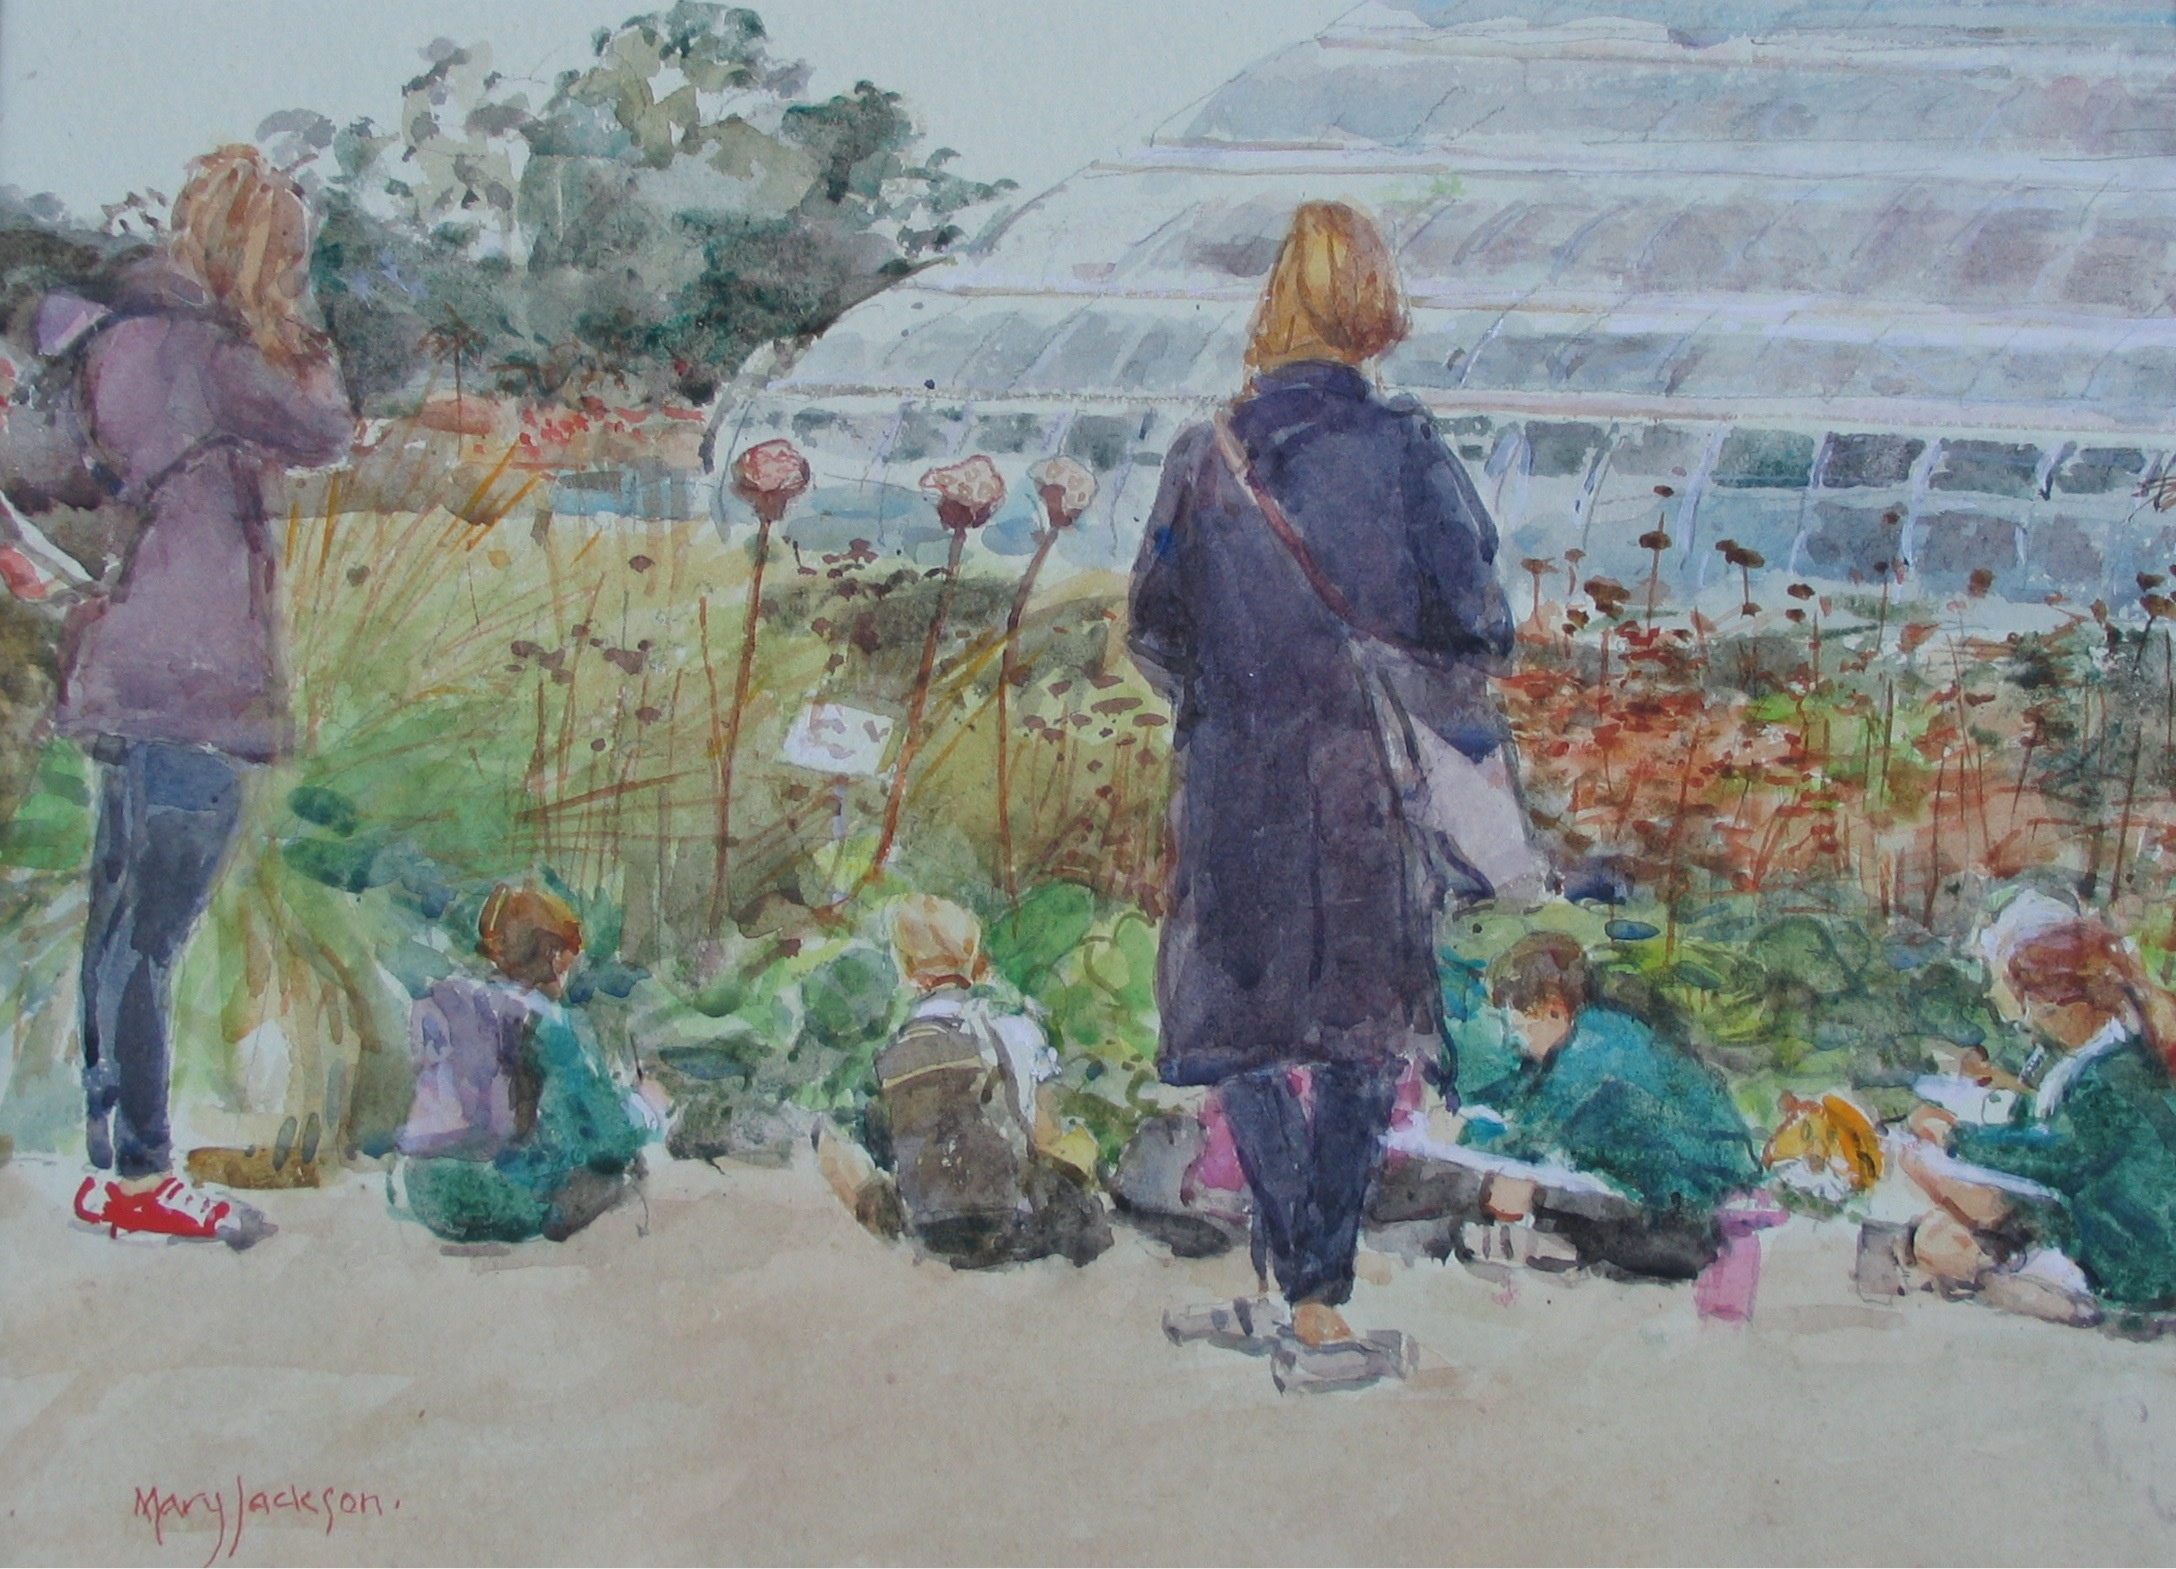 """<span class=""""link fancybox-details-link""""><a href=""""/artists/73-mary-jackson/works/9540-mary-jackson-the-school-outing-at-wisley-august-2014/"""">View Detail Page</a></span><div class=""""artist""""><span class=""""artist""""><strong>Mary Jackson</strong></span></div><div class=""""title""""><em> The School Outing at Wisley , August 2014</em></div>"""